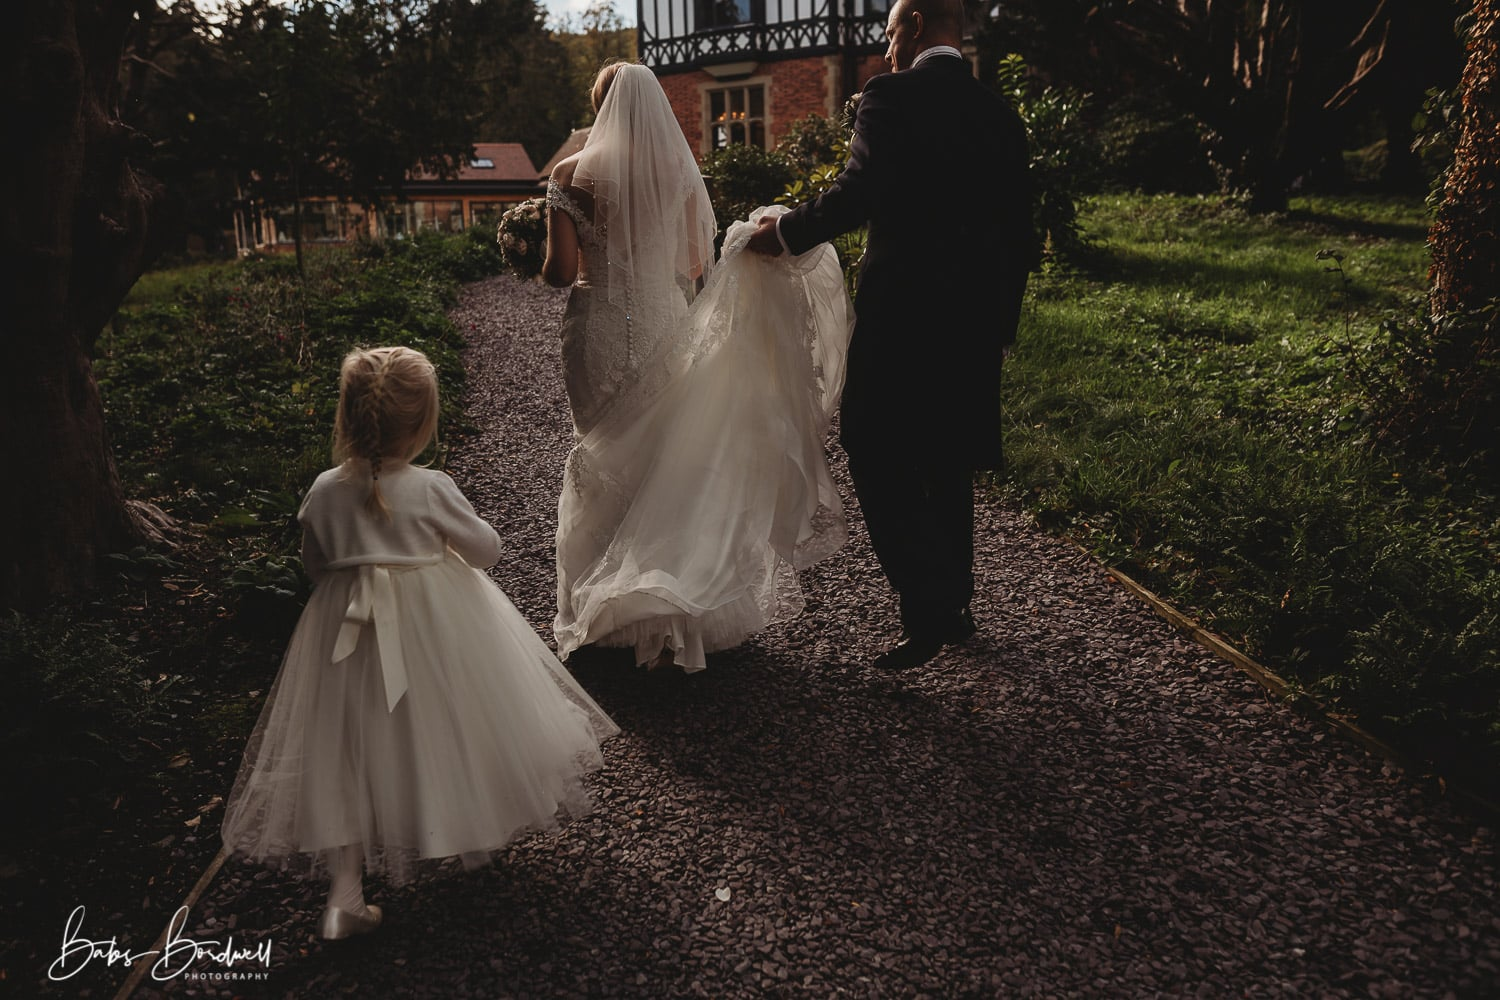 bride and groom walking with groom holding the bride's dress up and a flower girl following them at Tyn Dwr Hall